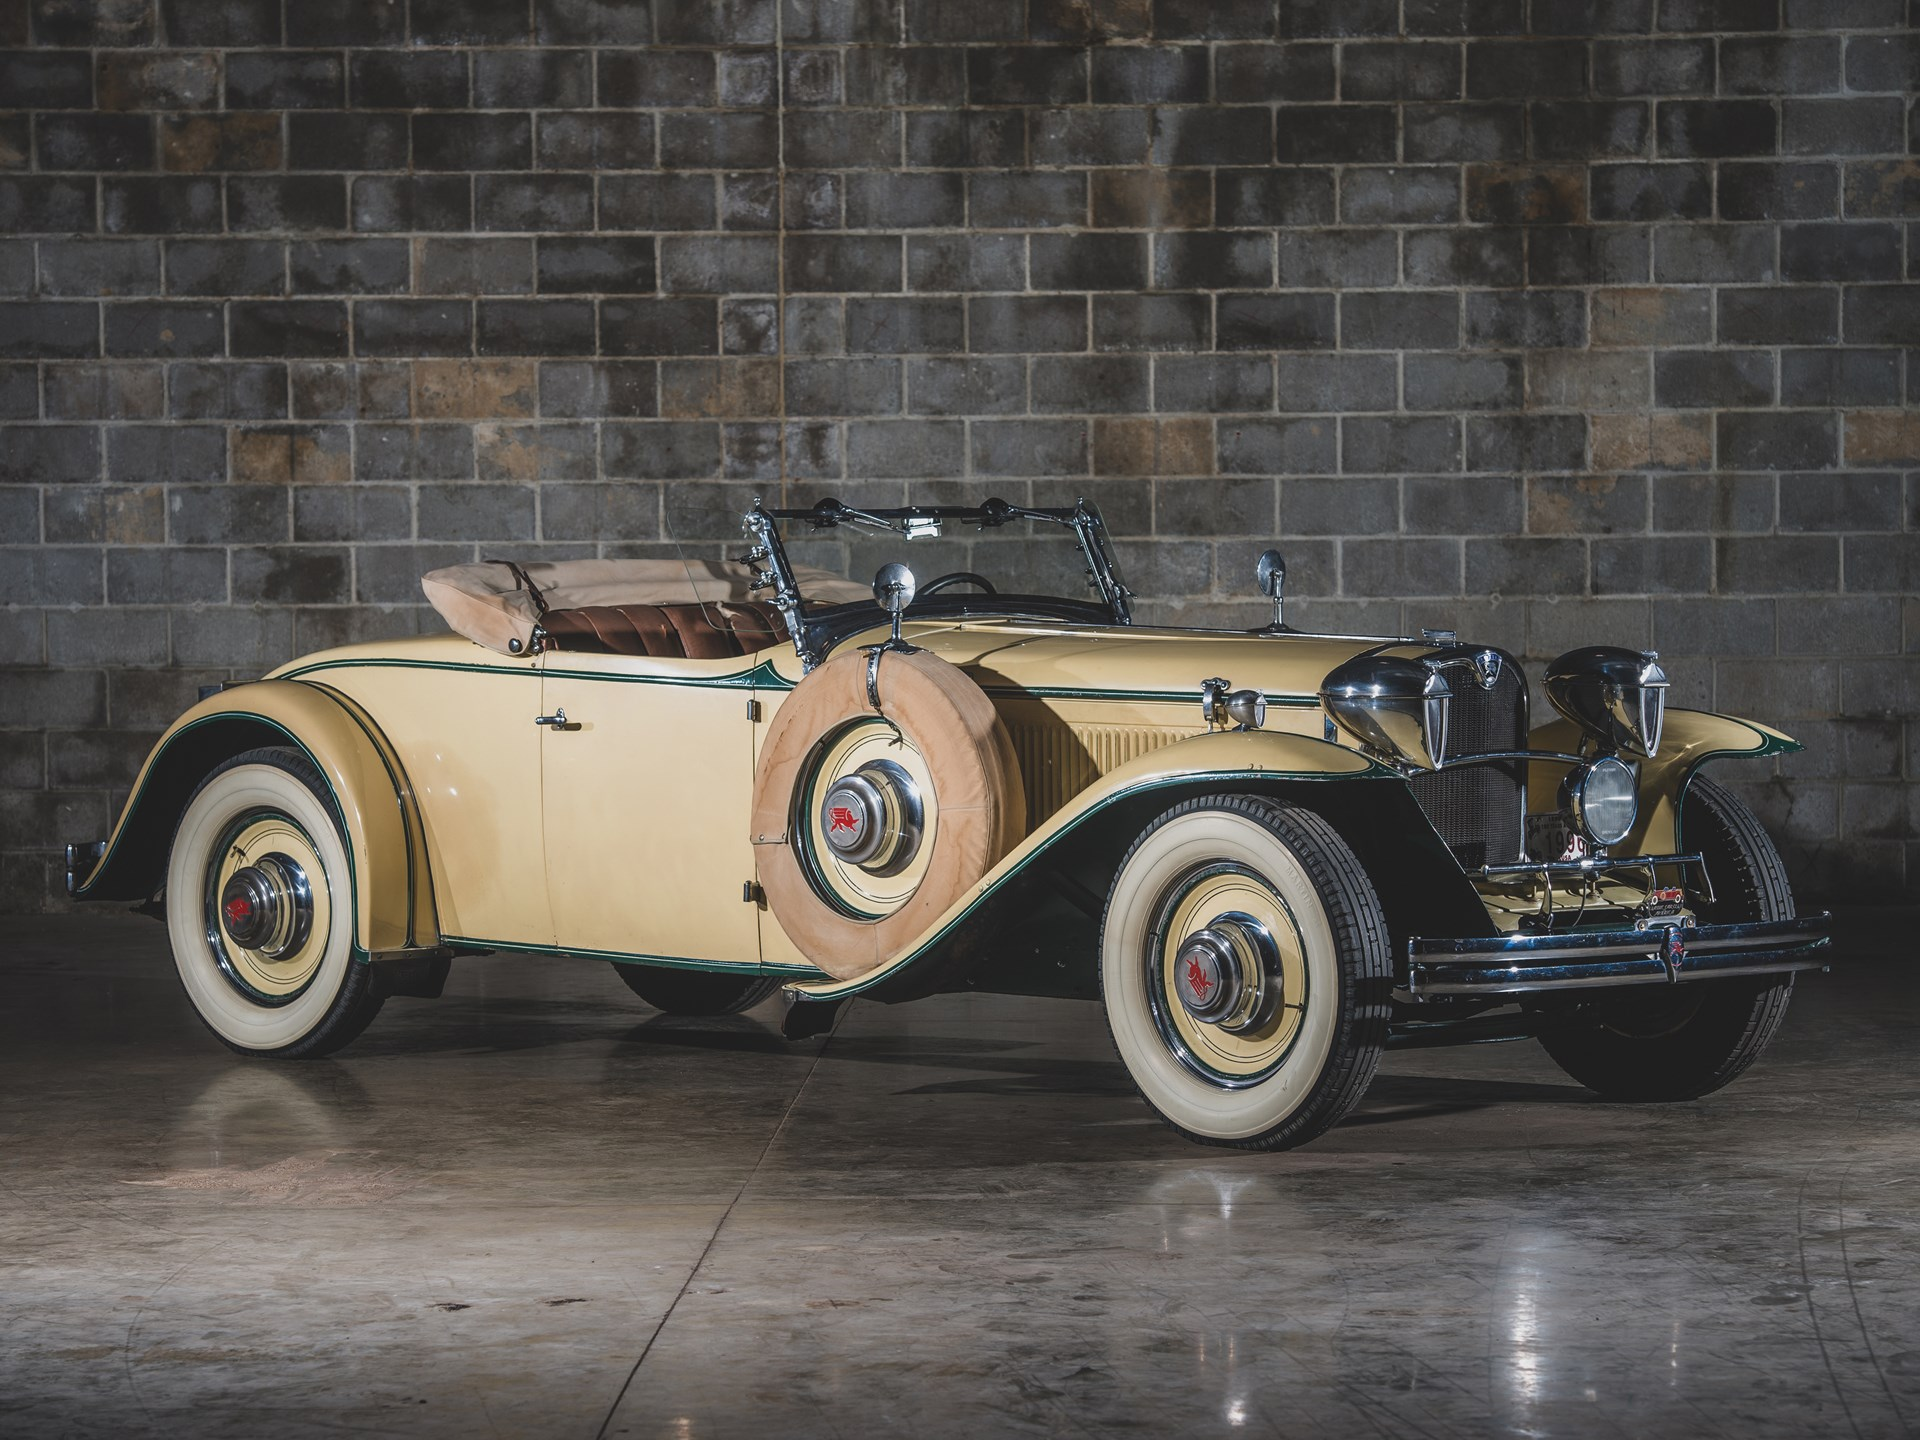 1930 Ruxton Model C Roadster by Baker-Raulang